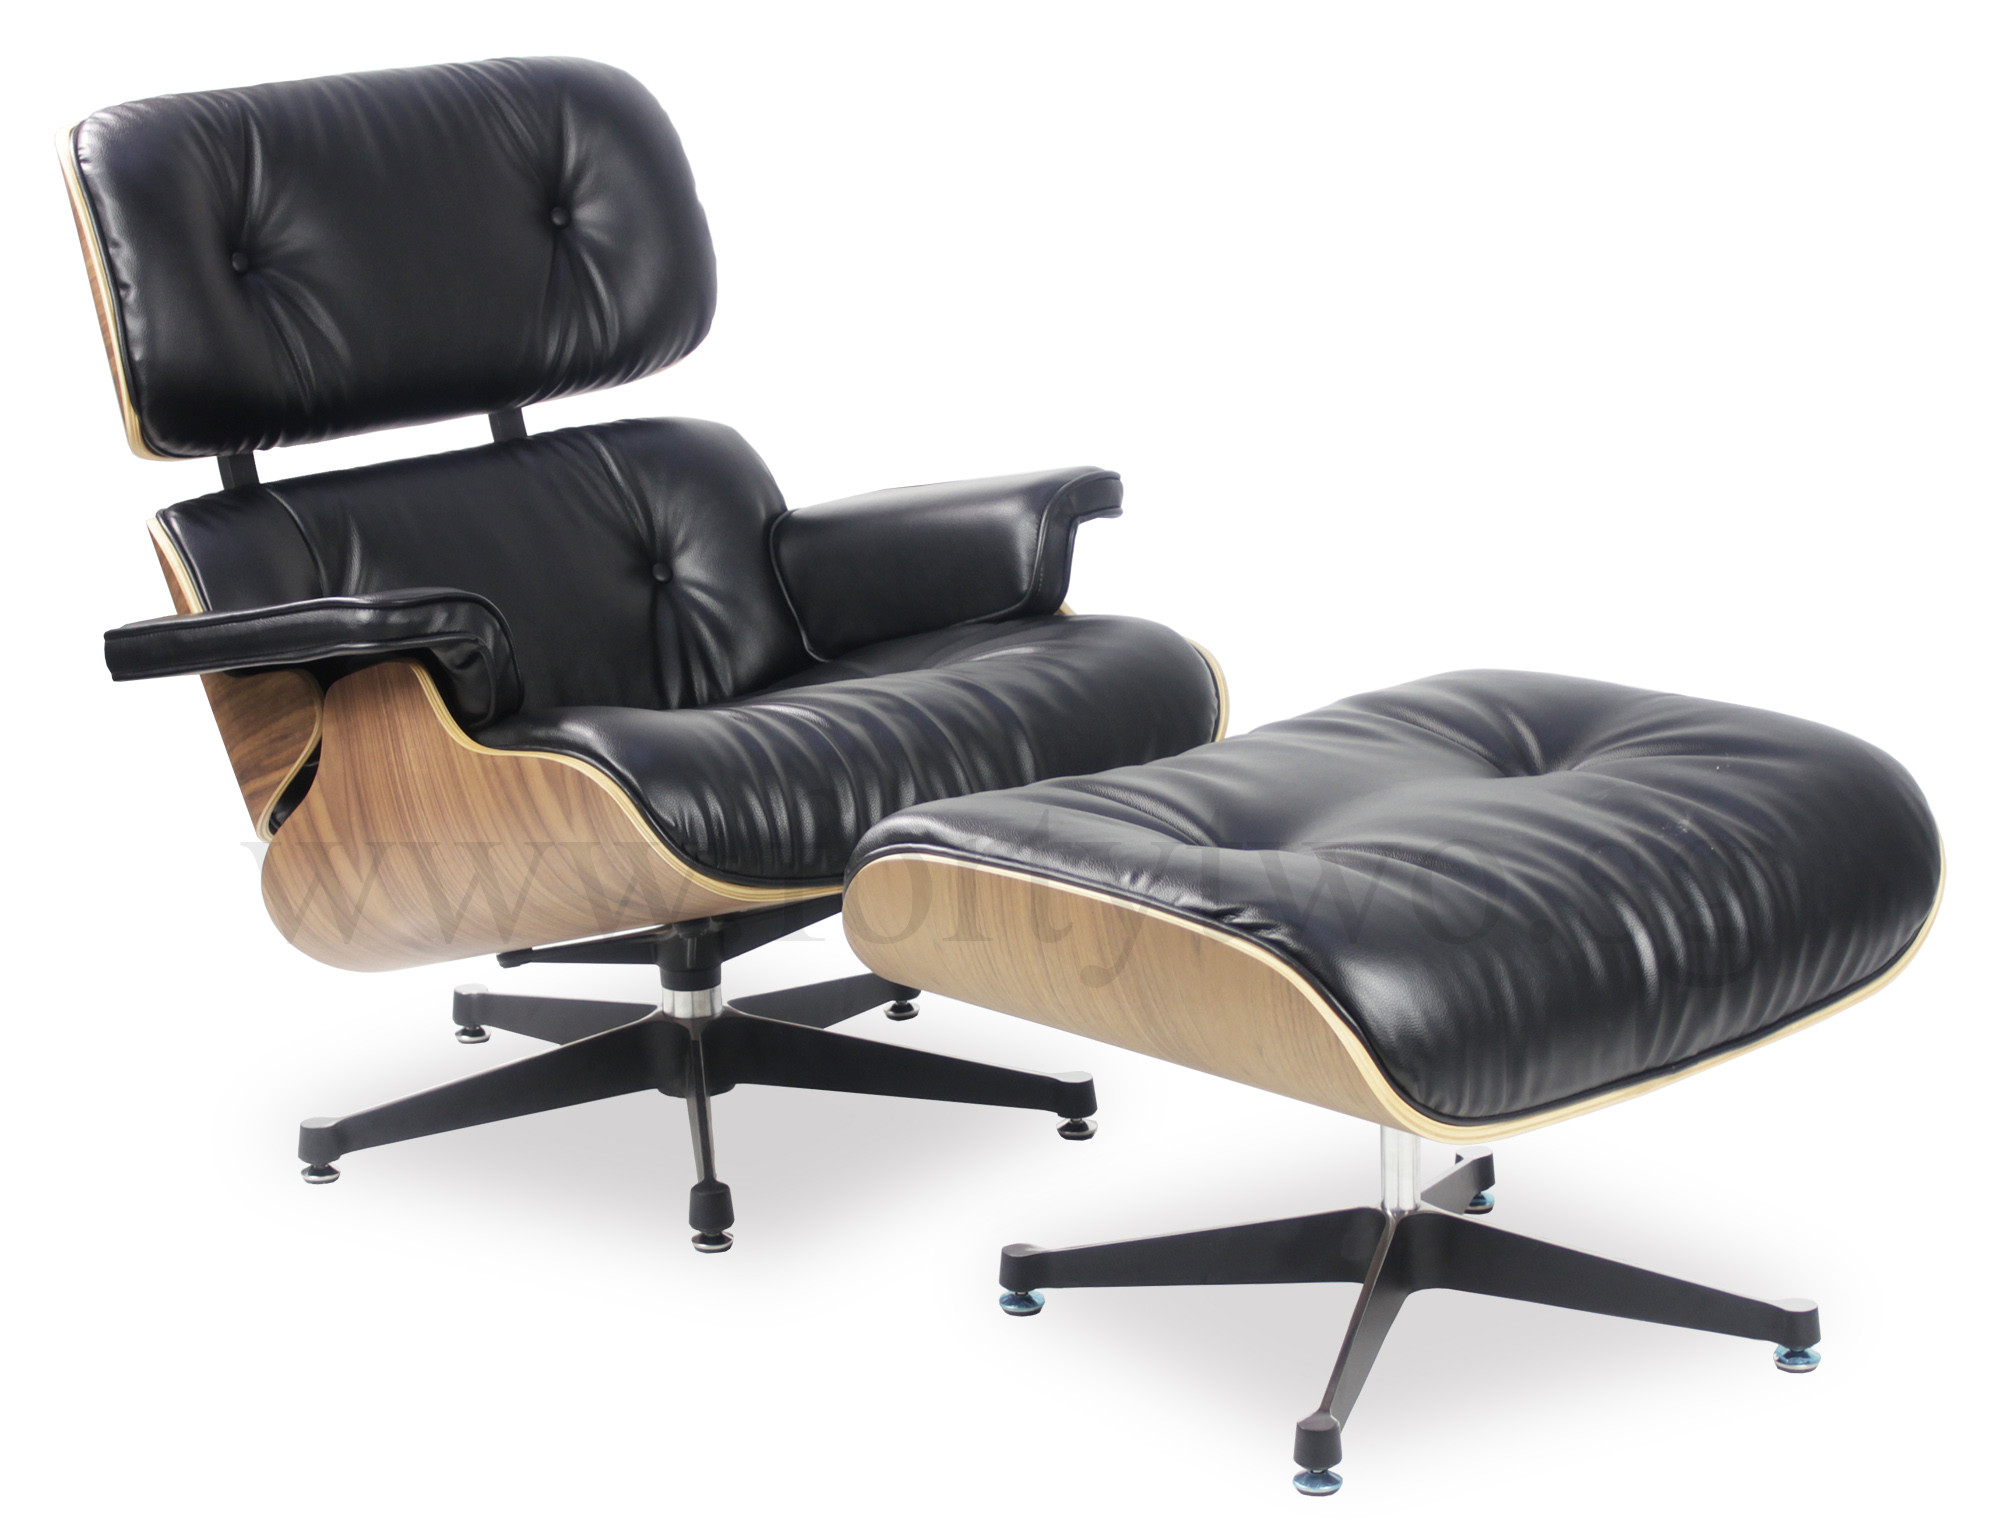 Designer Chair Designer Replica Eames Lounge Chair Black Leather